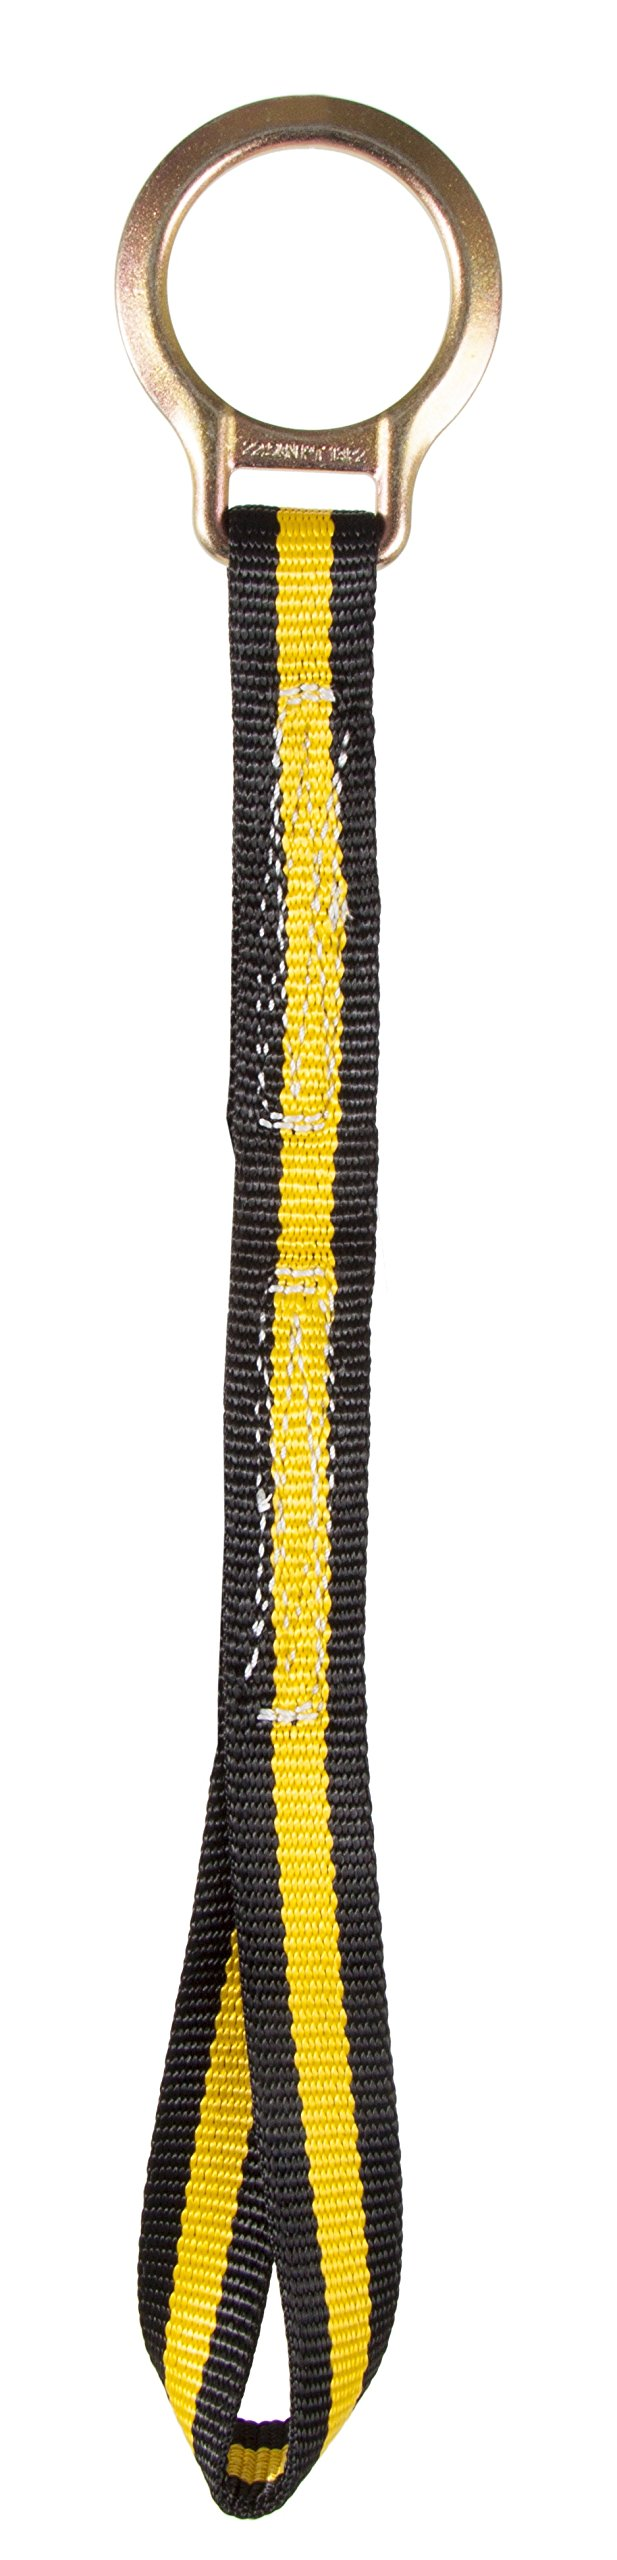 Guardian Fall Protection 01122 18-Inch Extension Lanyard with Web Loop End by Guardian Fall Protection